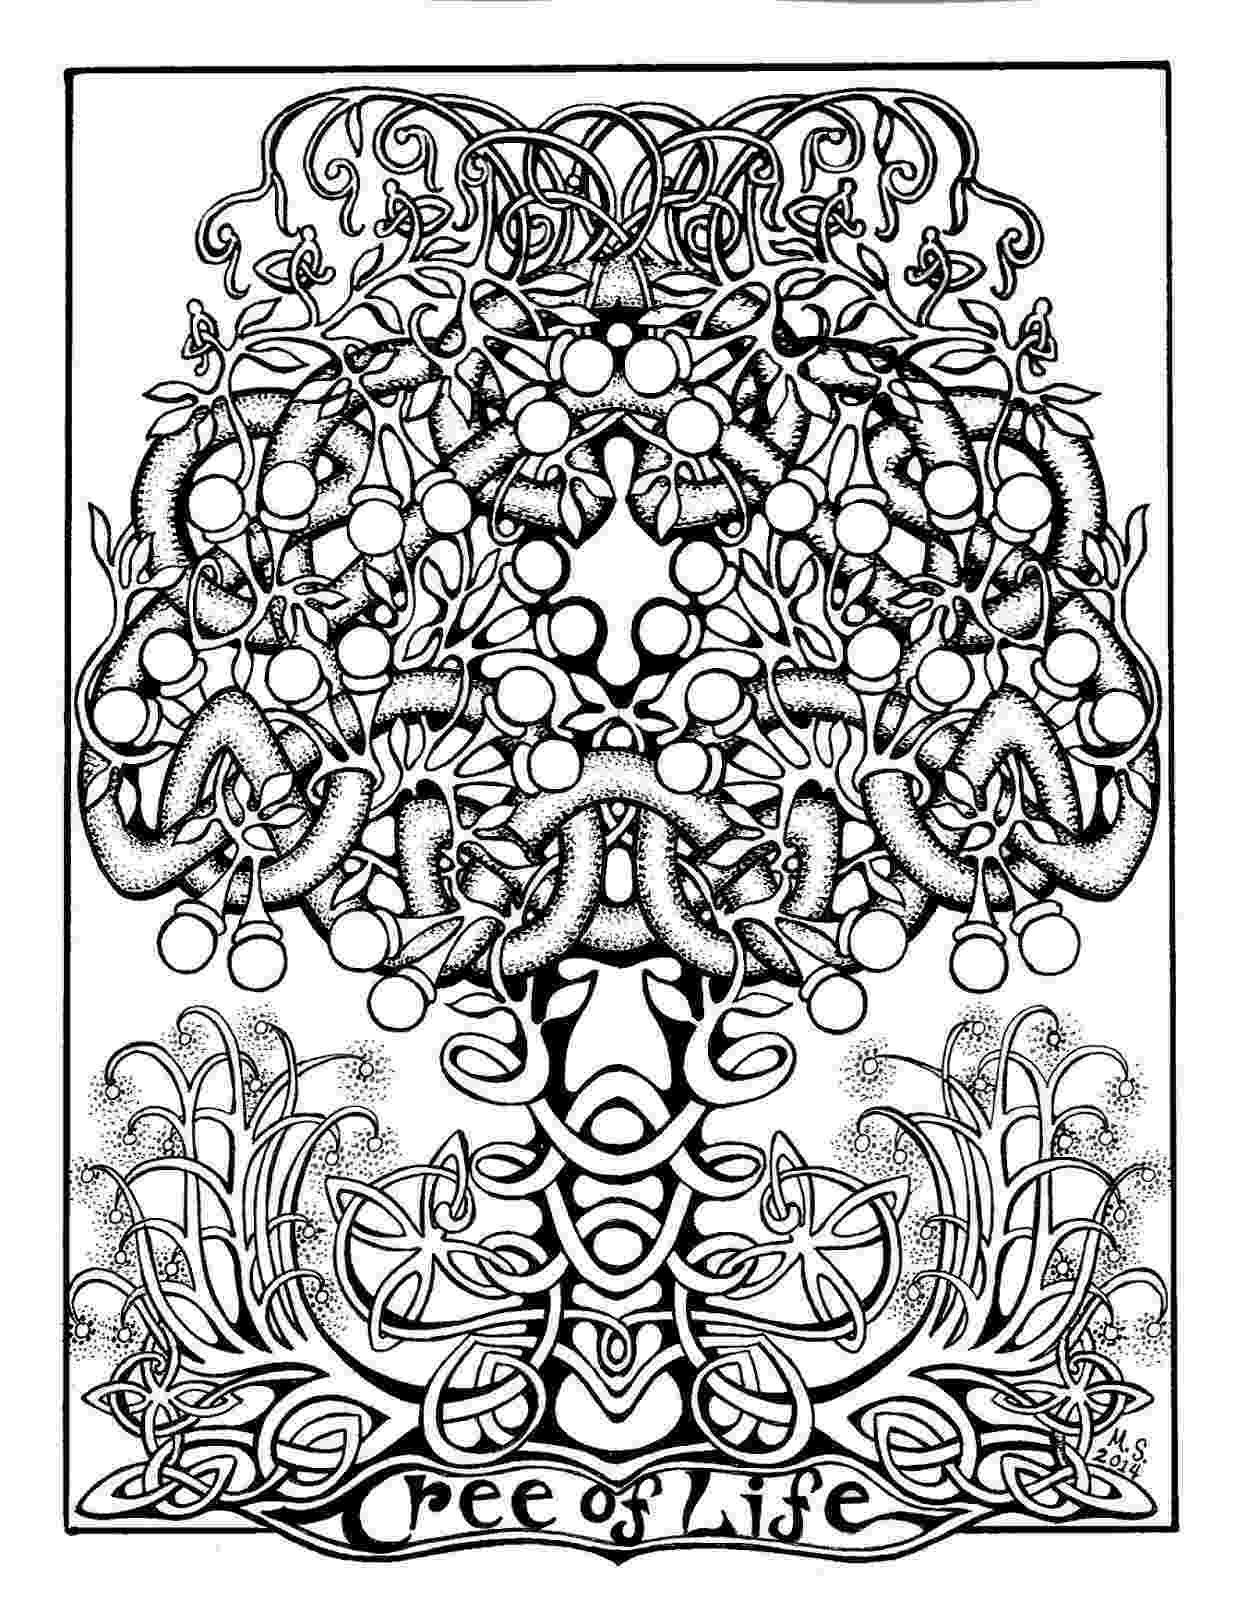 tree of life coloring pages dead tree dark abstract coloring download dead tree dark coloring tree life of pages